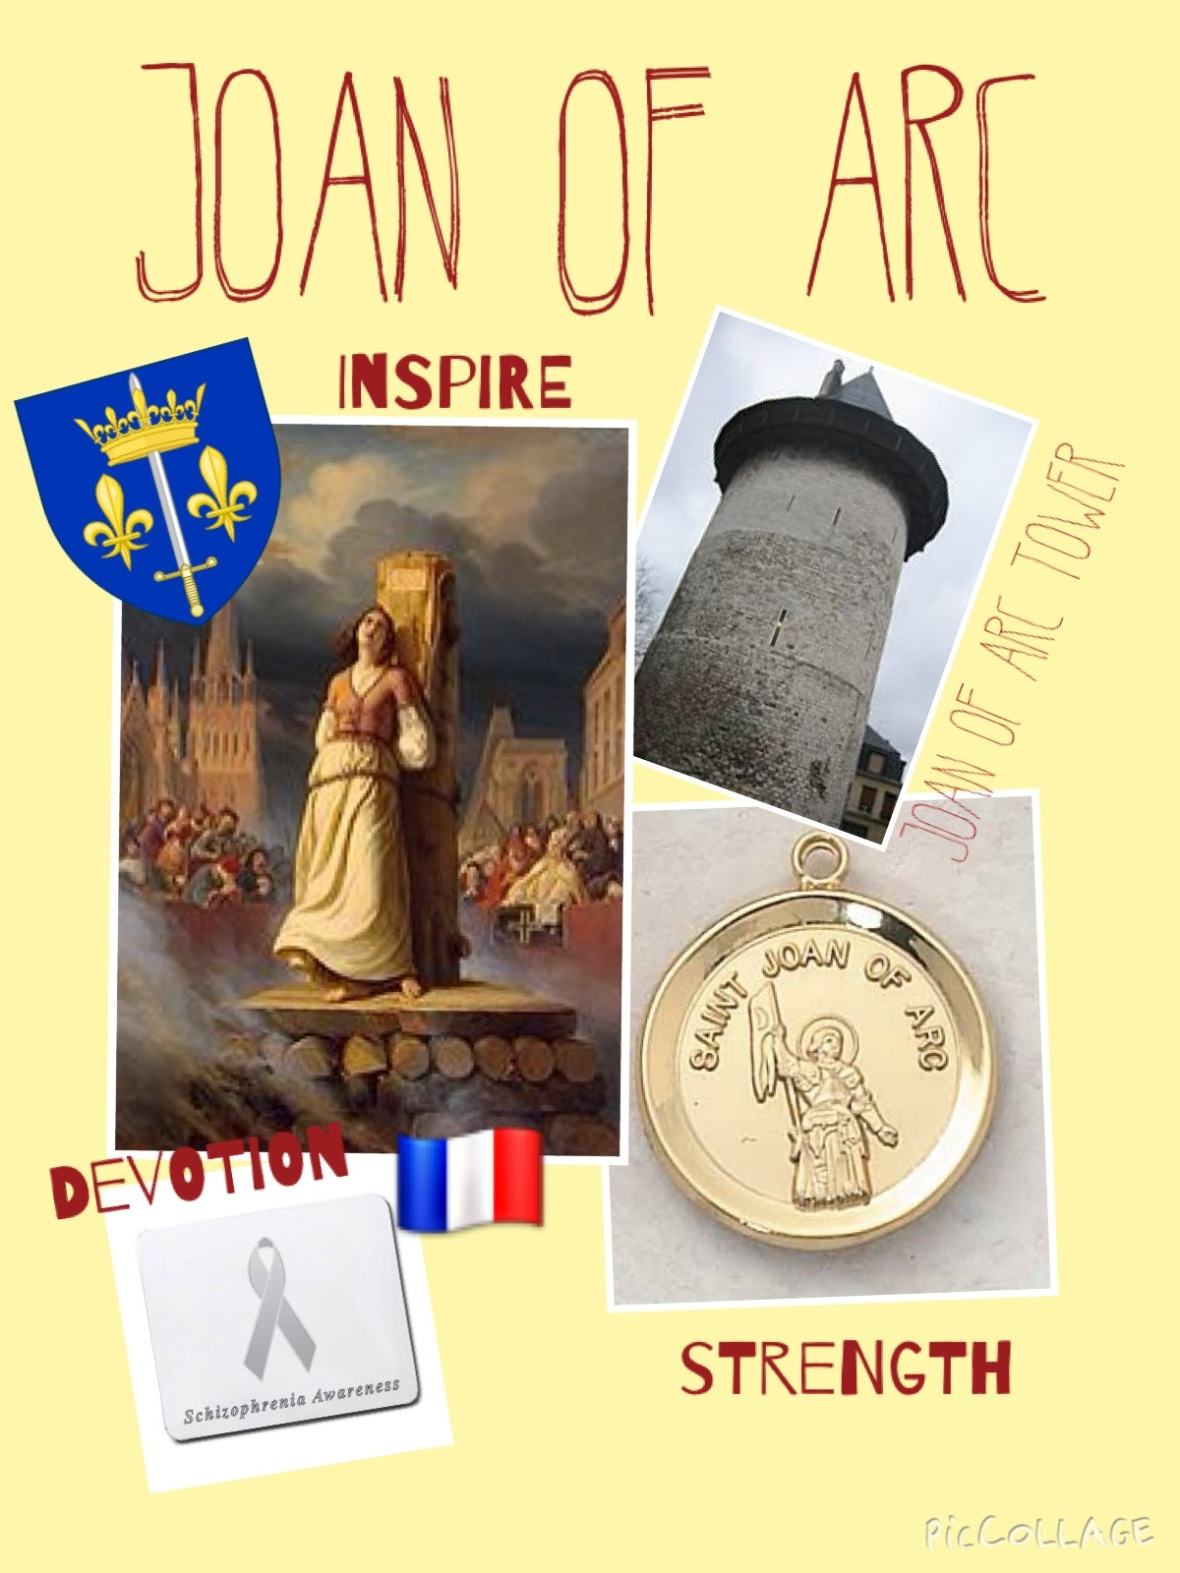 Lastly, I chose to do my project on Joan of Arc. As a mentally ill person, her story resonates deeply with me. Joan showed symptoms of schizophrenia and is an important historical figure in mentally ill communities. Photo courtesy Olivia Short '17